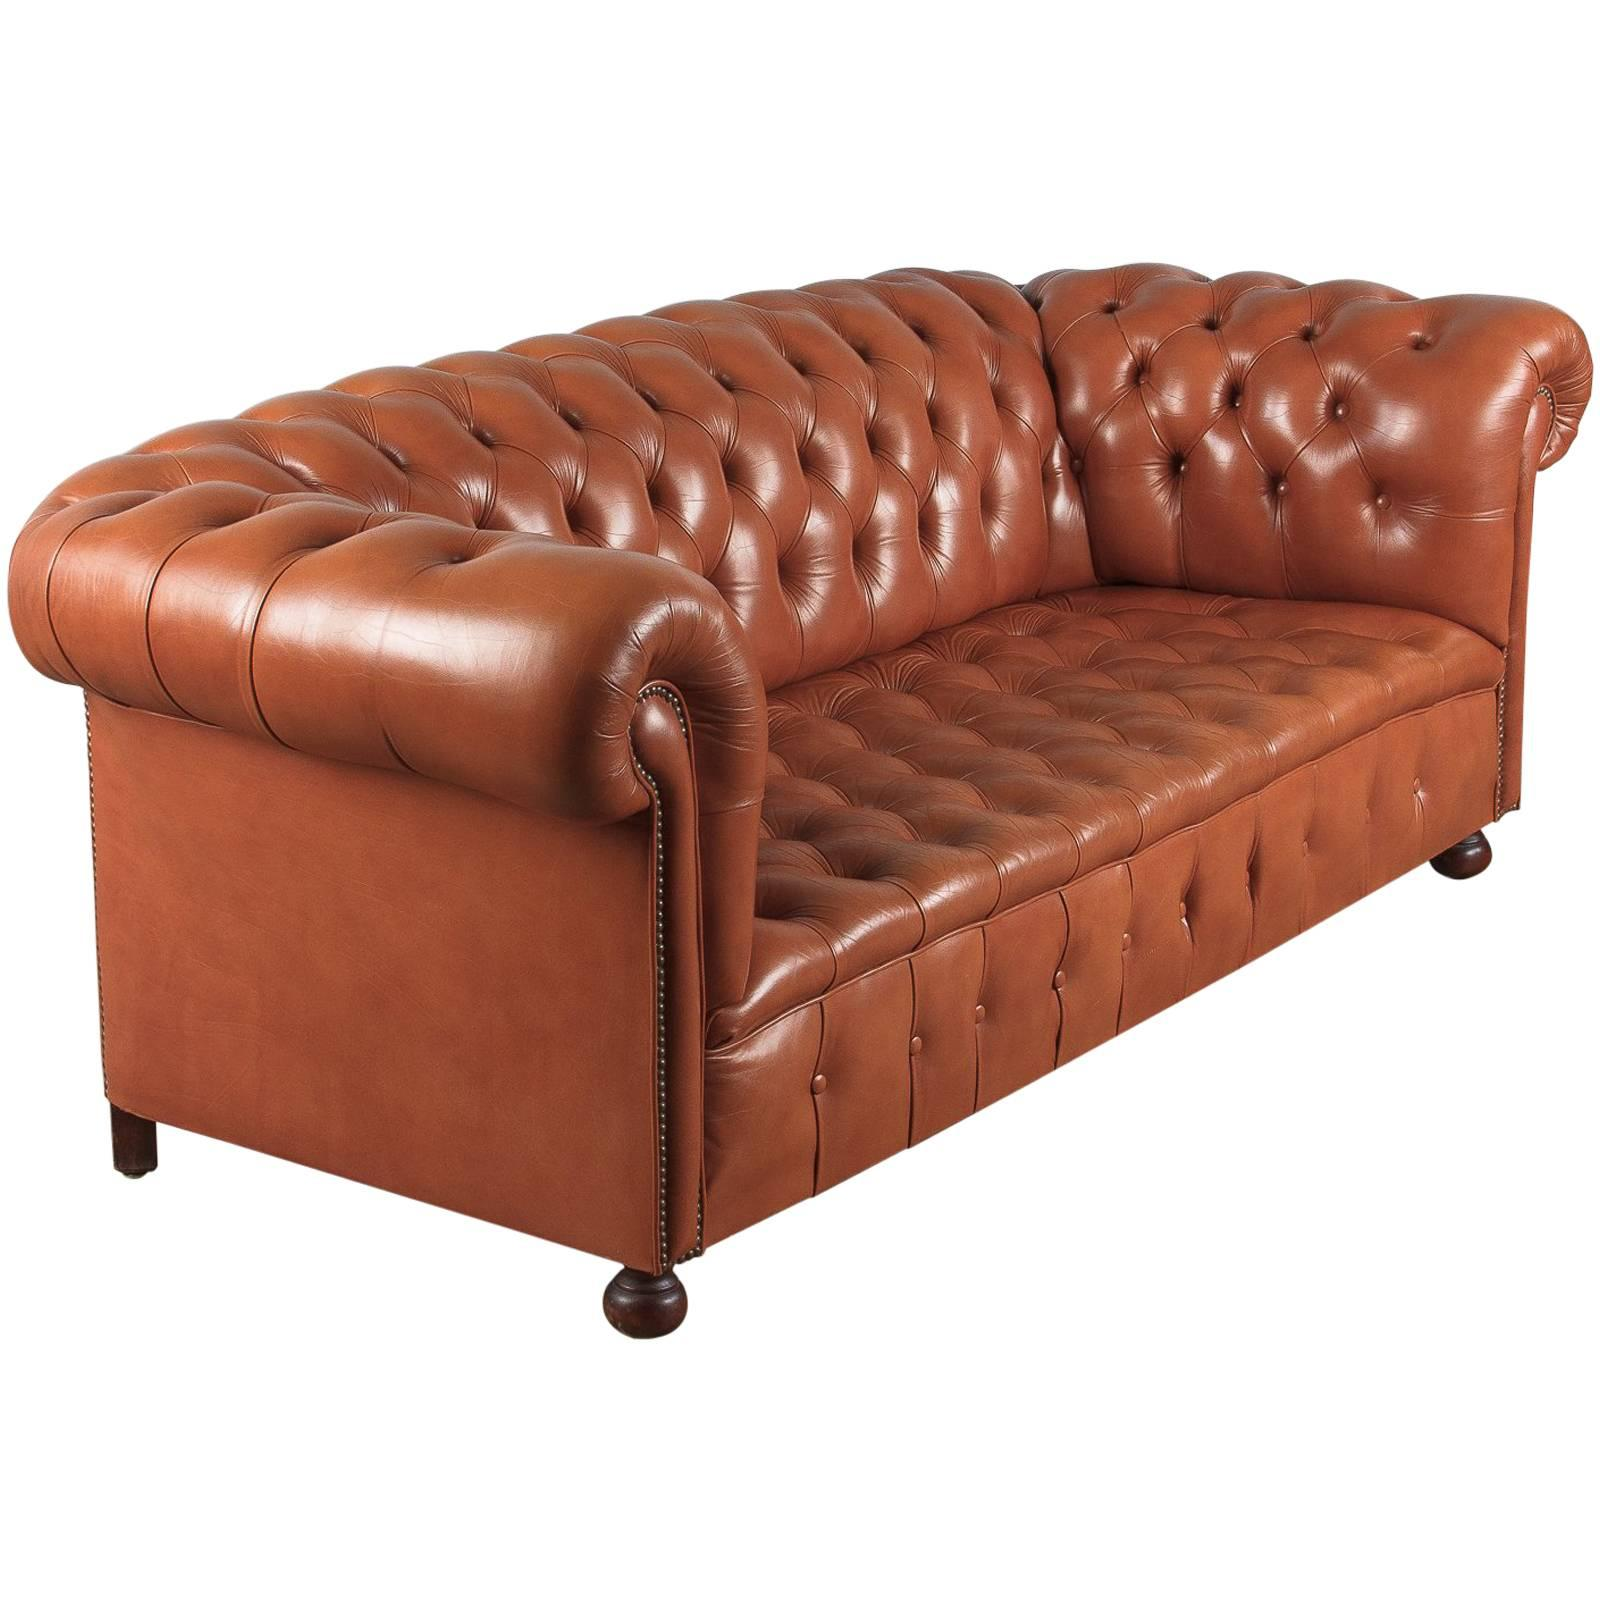 Vintage English Leather Chesterfield Sofa, 1960s